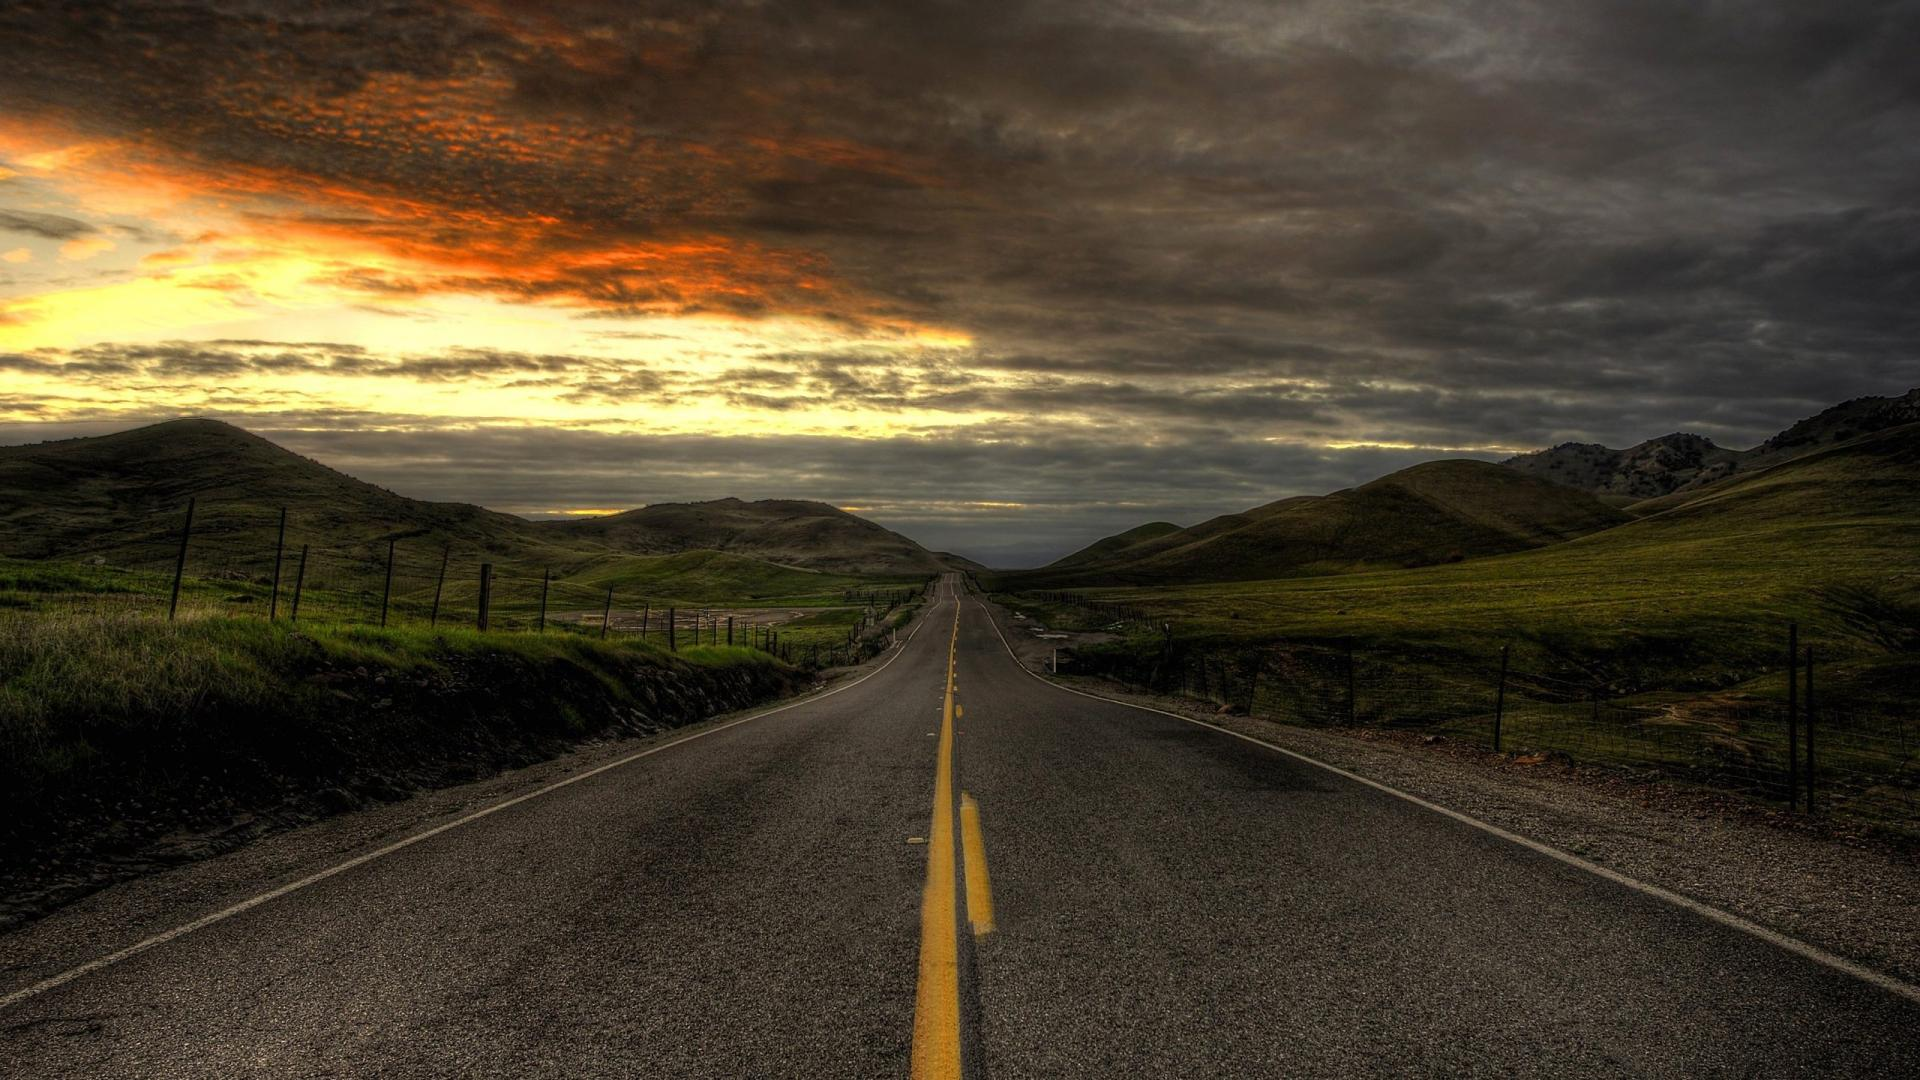 Road Full HD Wallpaper And Background Image